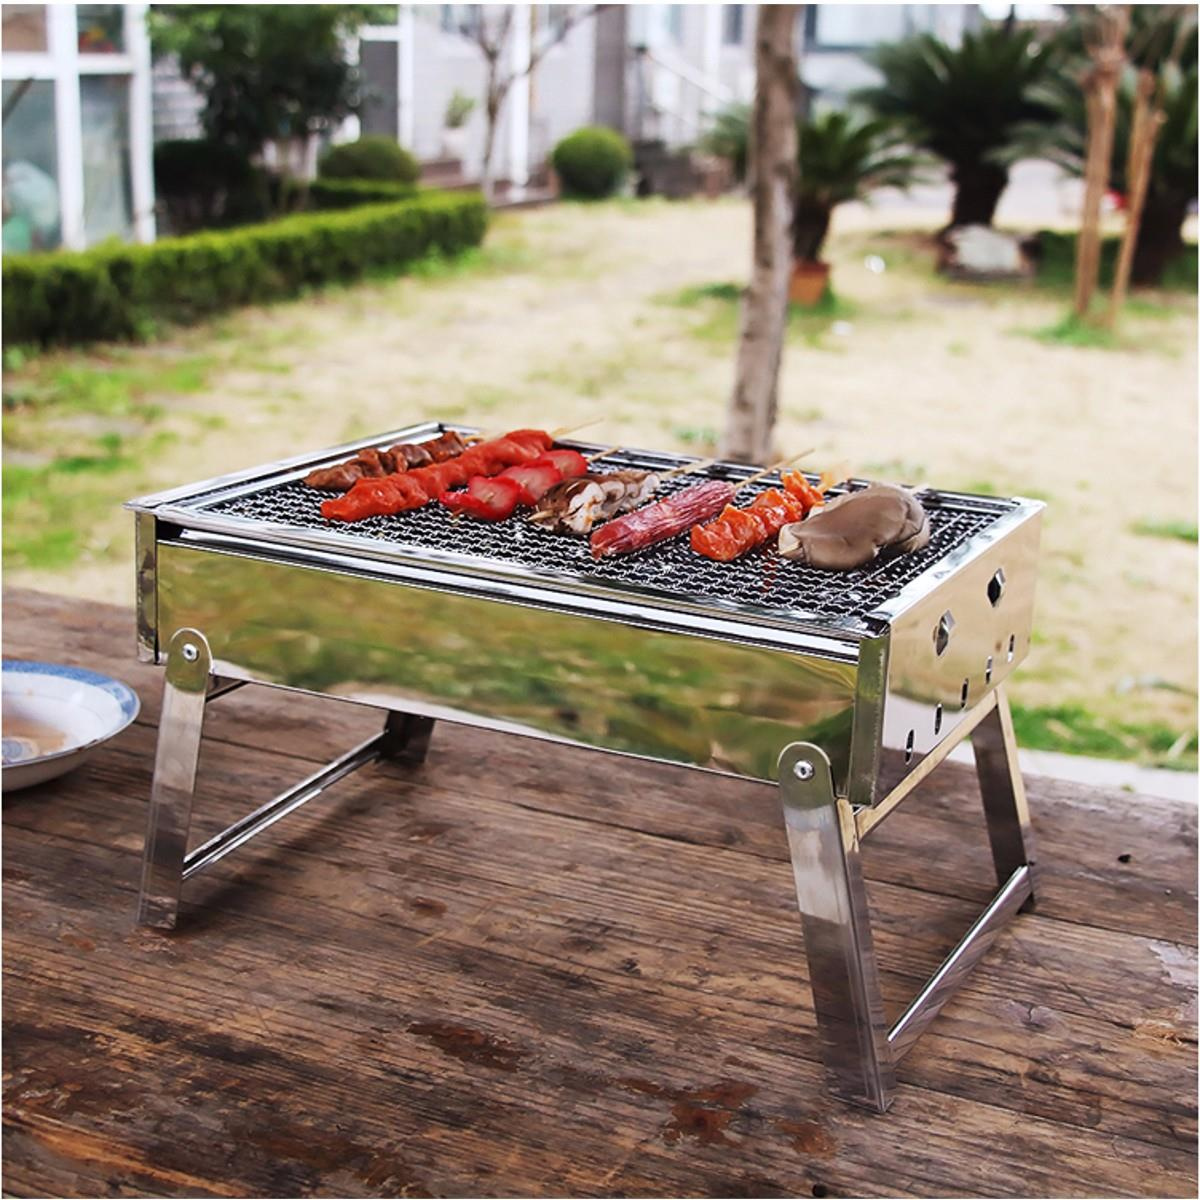 Portable Grill Rack Stainless Steel Stove Pan Outdoor Roaster Outdoor Charcoal Barbecue Home Oven Set Cooking Picnic BBQ Camping